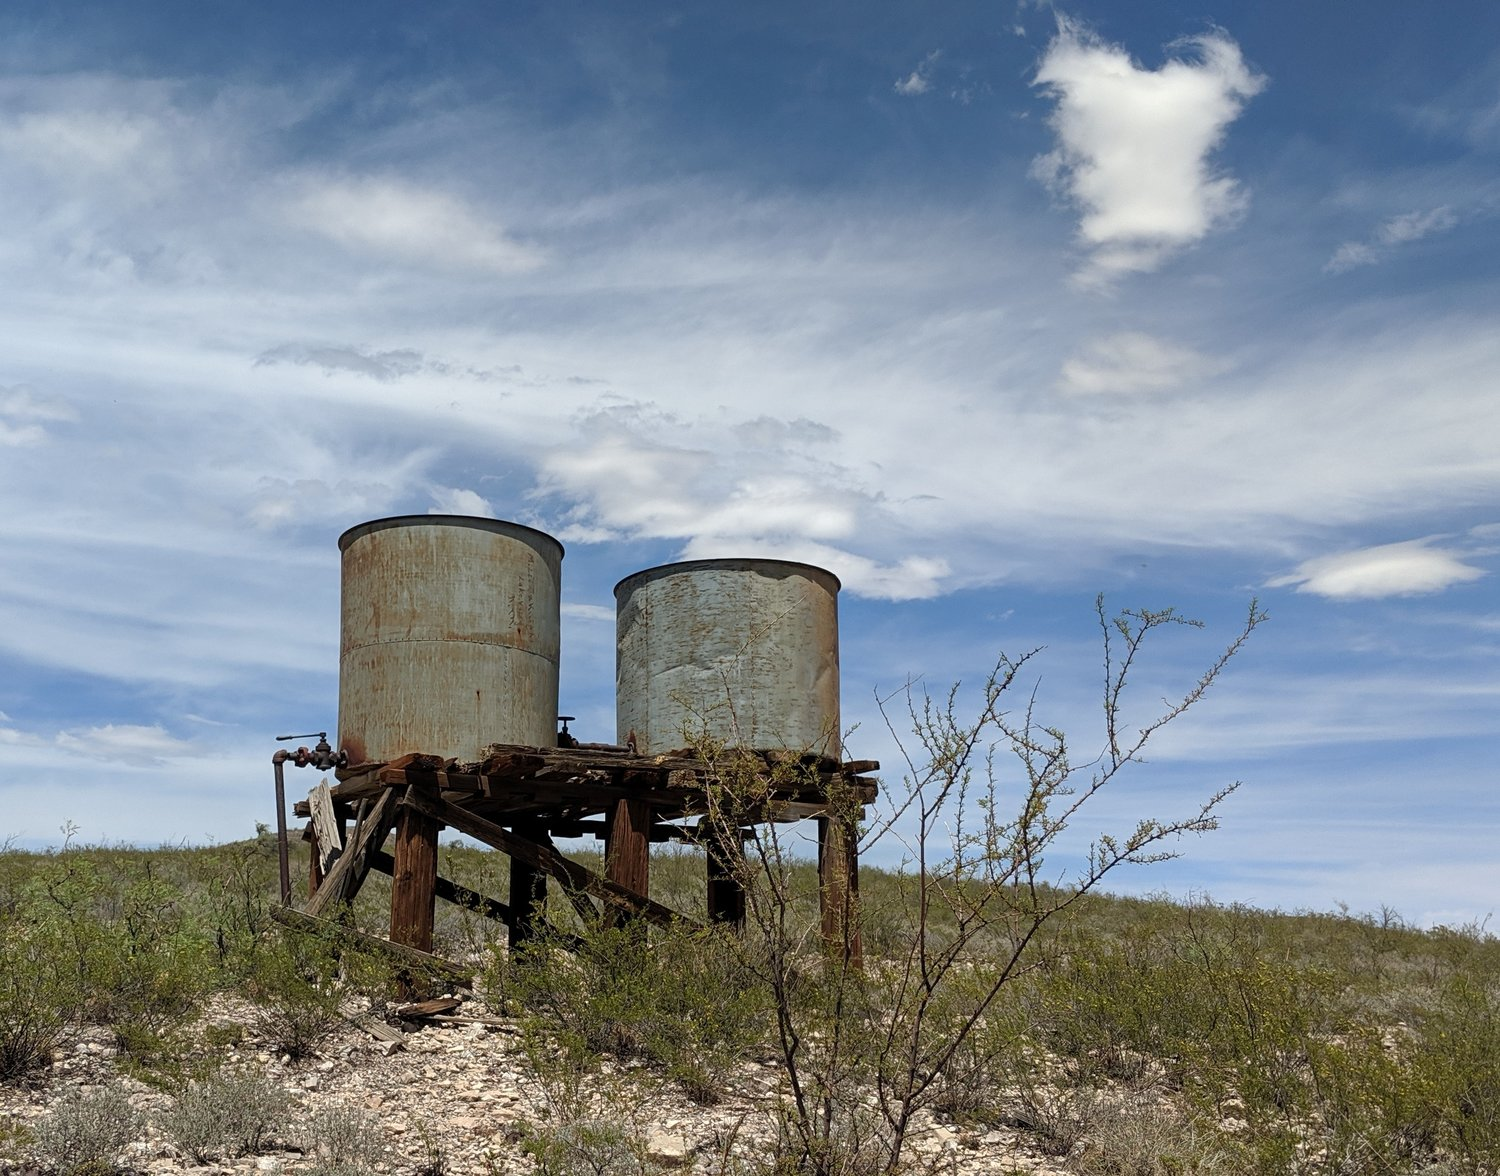 A couple of water towers mark where a railroad once served the thriving mining town of Lake Valley.